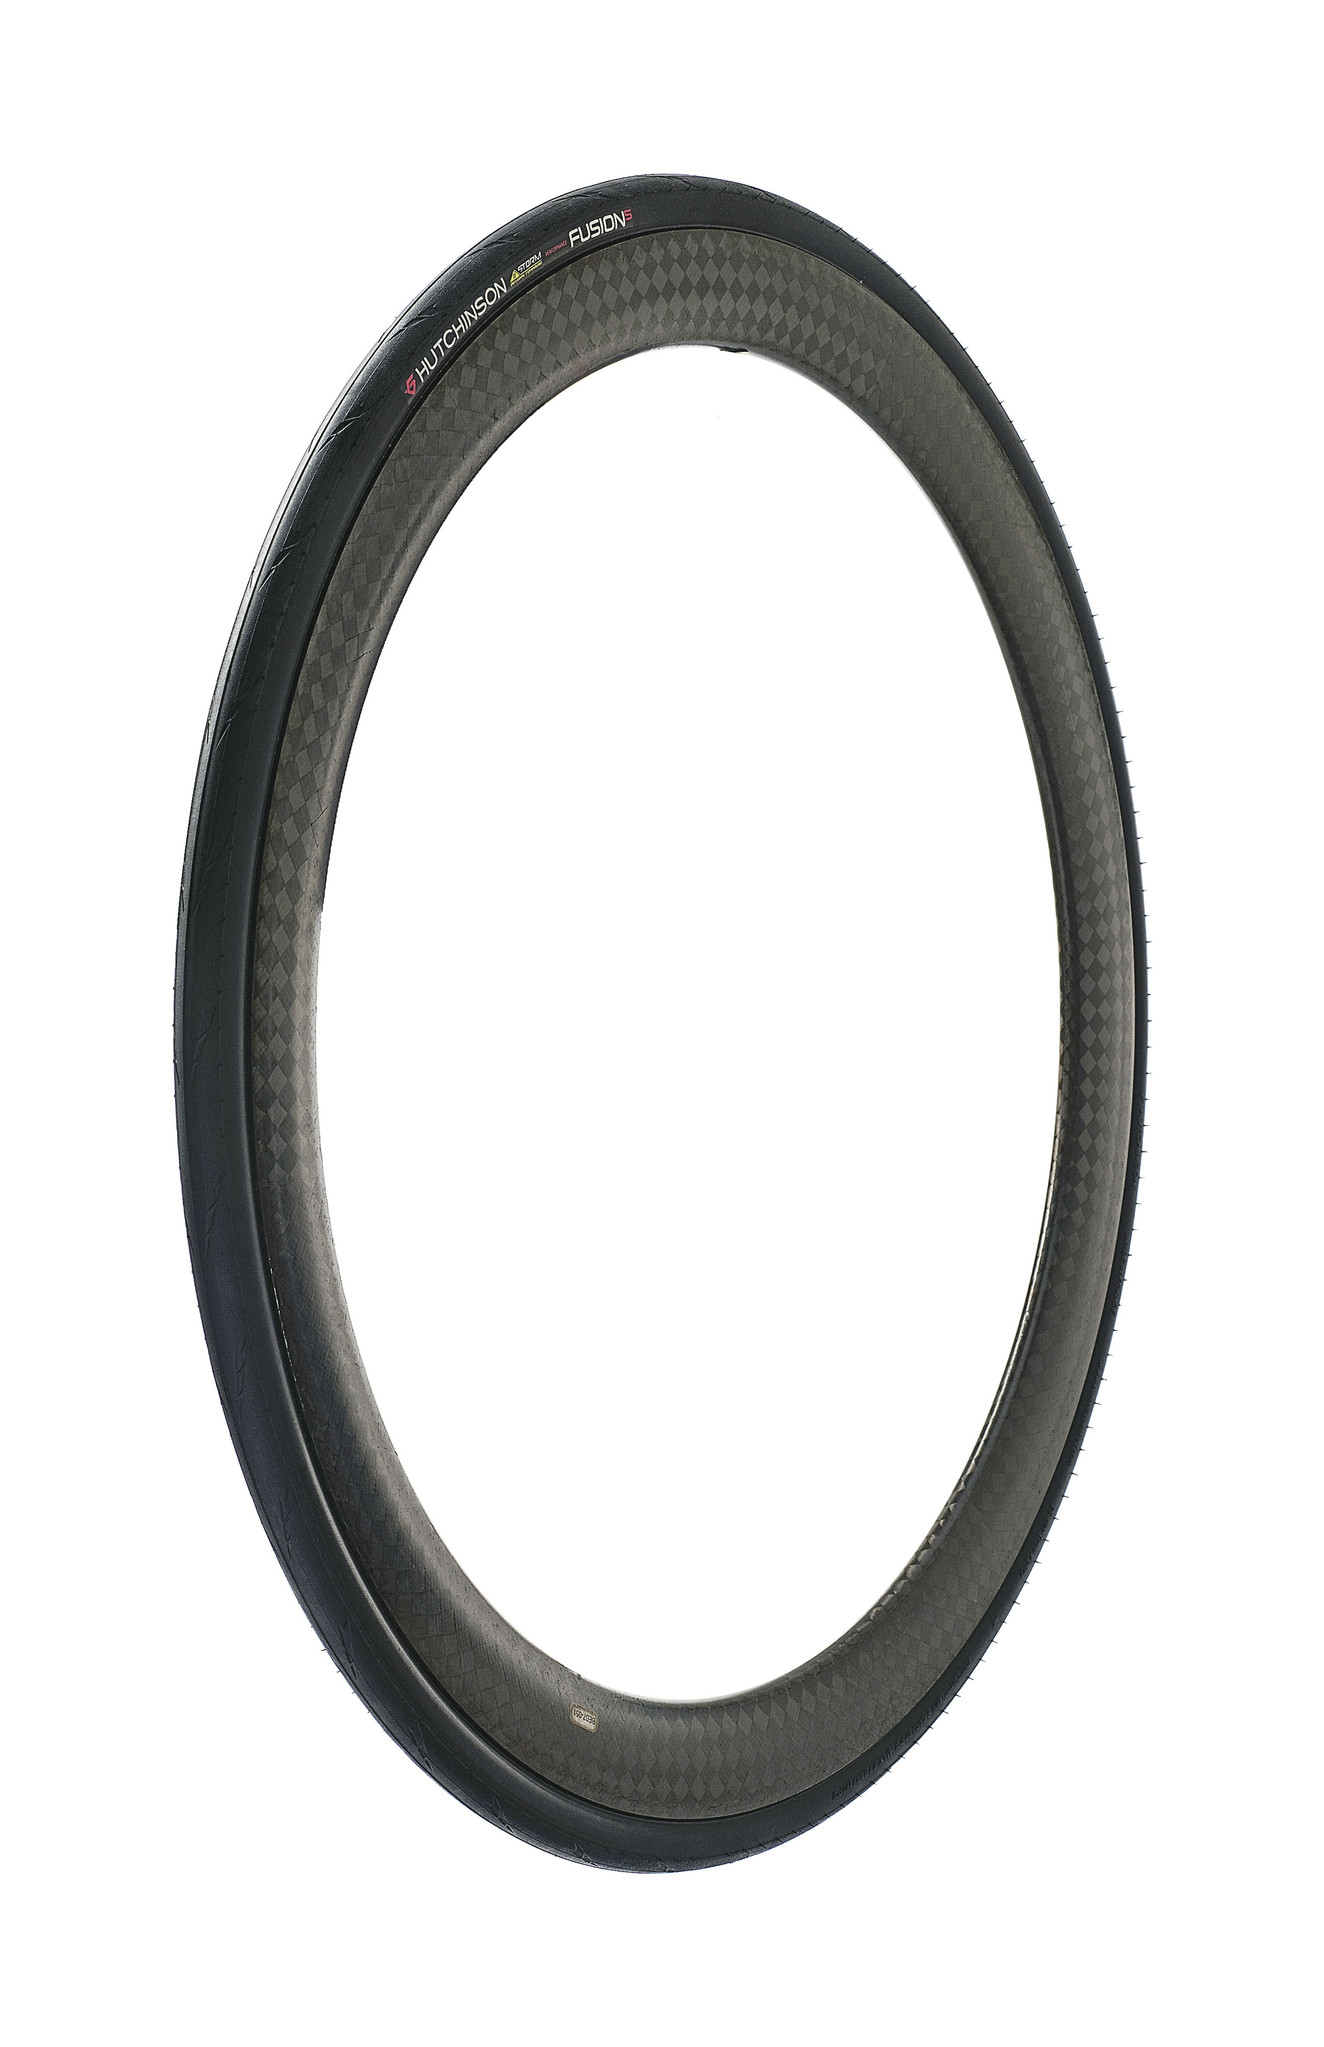 Hutchinson Hutchinson Fusion 5 Performance 700x25 Tubeless